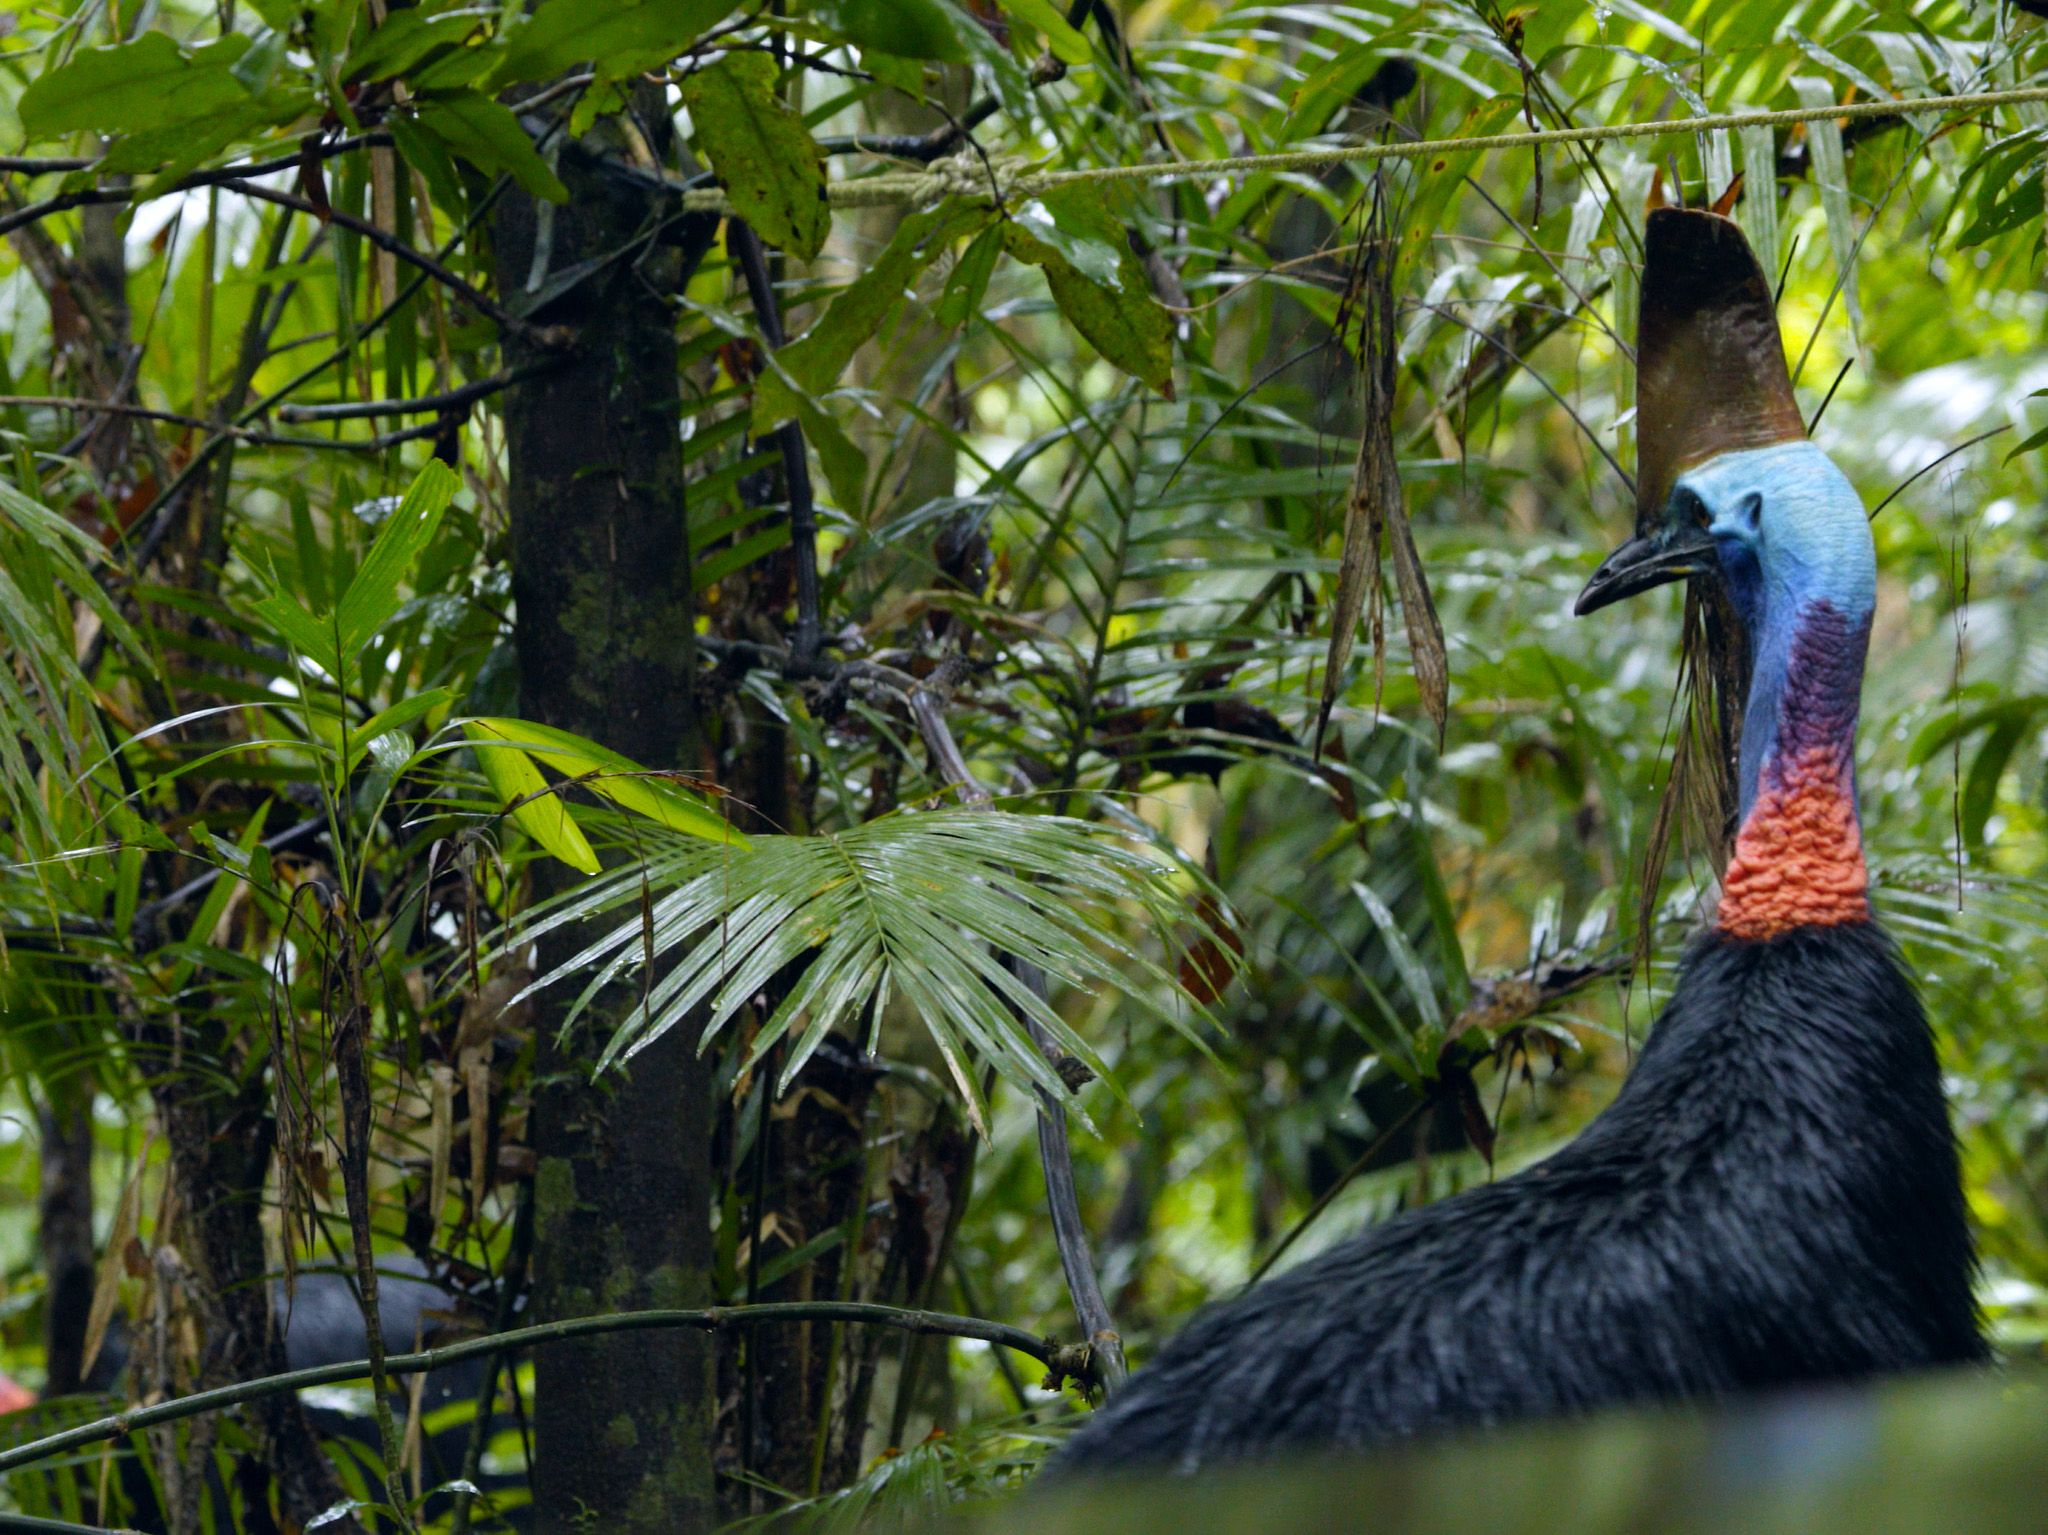 Big Bertha in s confrontation with a male cassowary called Taiga, who can be seen in the... [Photo of the day - February 2020]